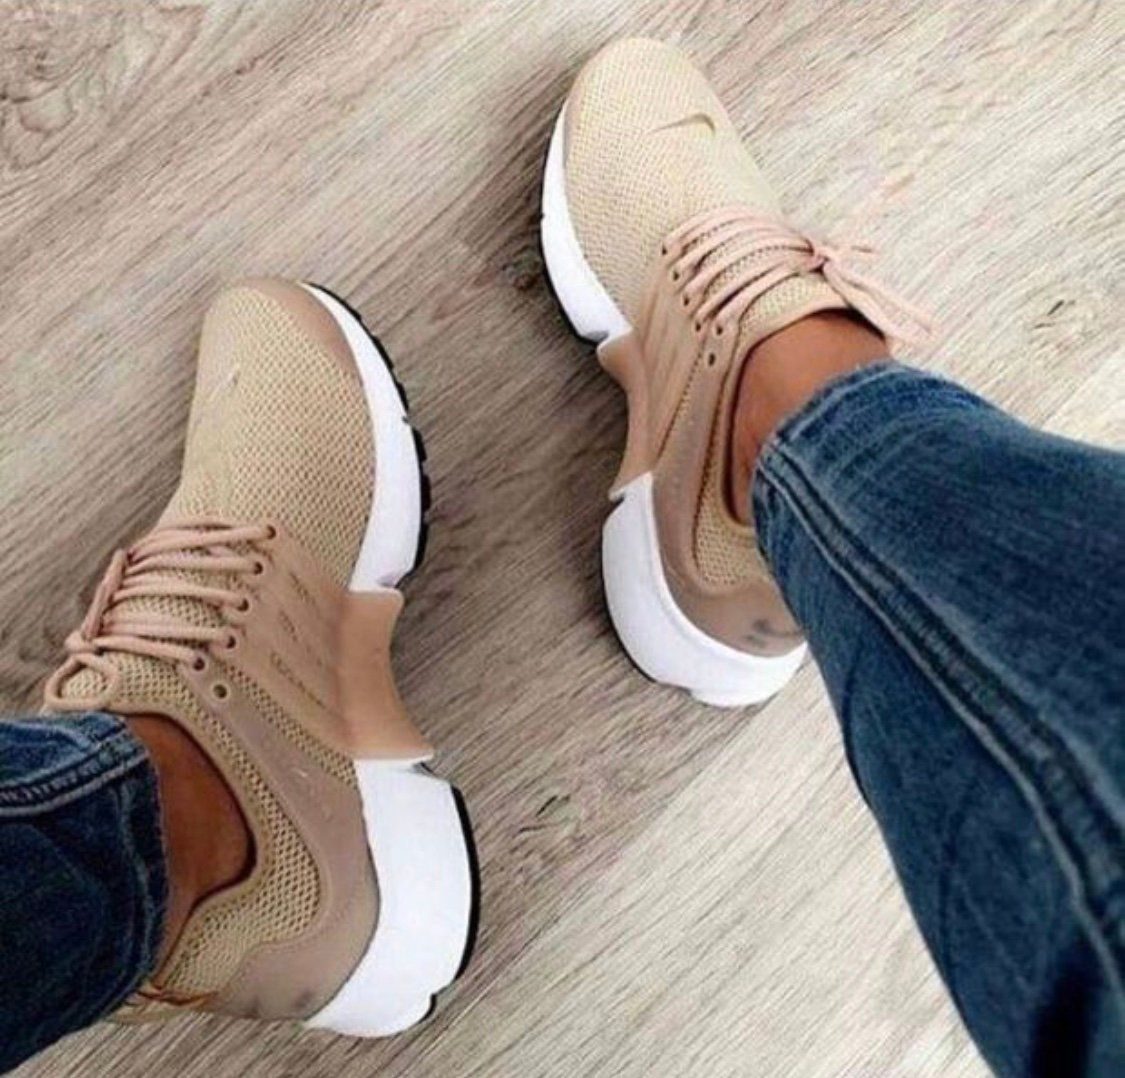 Pin by Lennaaa on S H O E S | Shoes, Nike shoes, Shoe boots